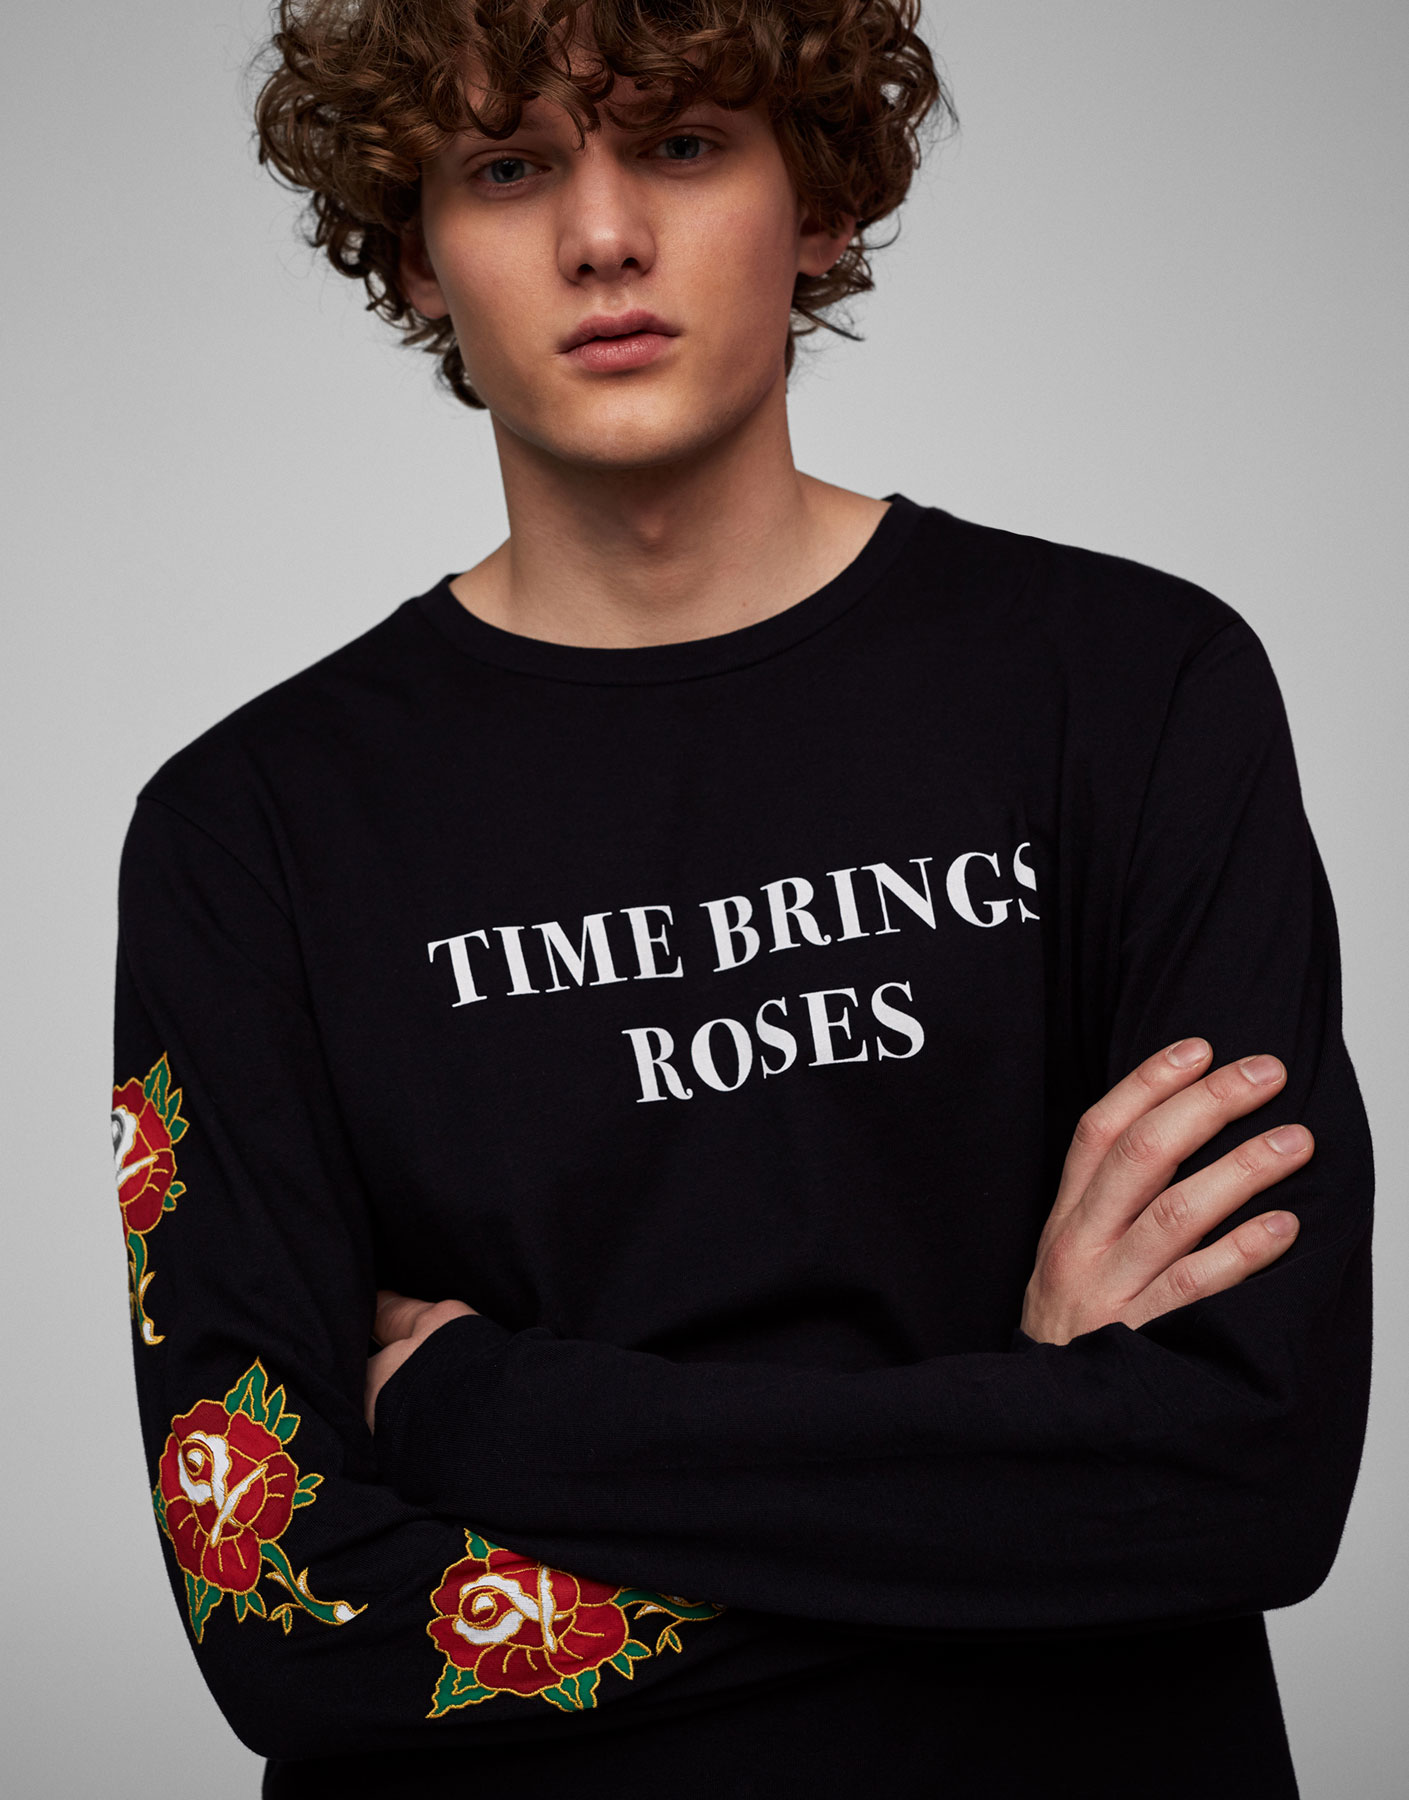 Sweatshirt with embroidered flowers on sleeve